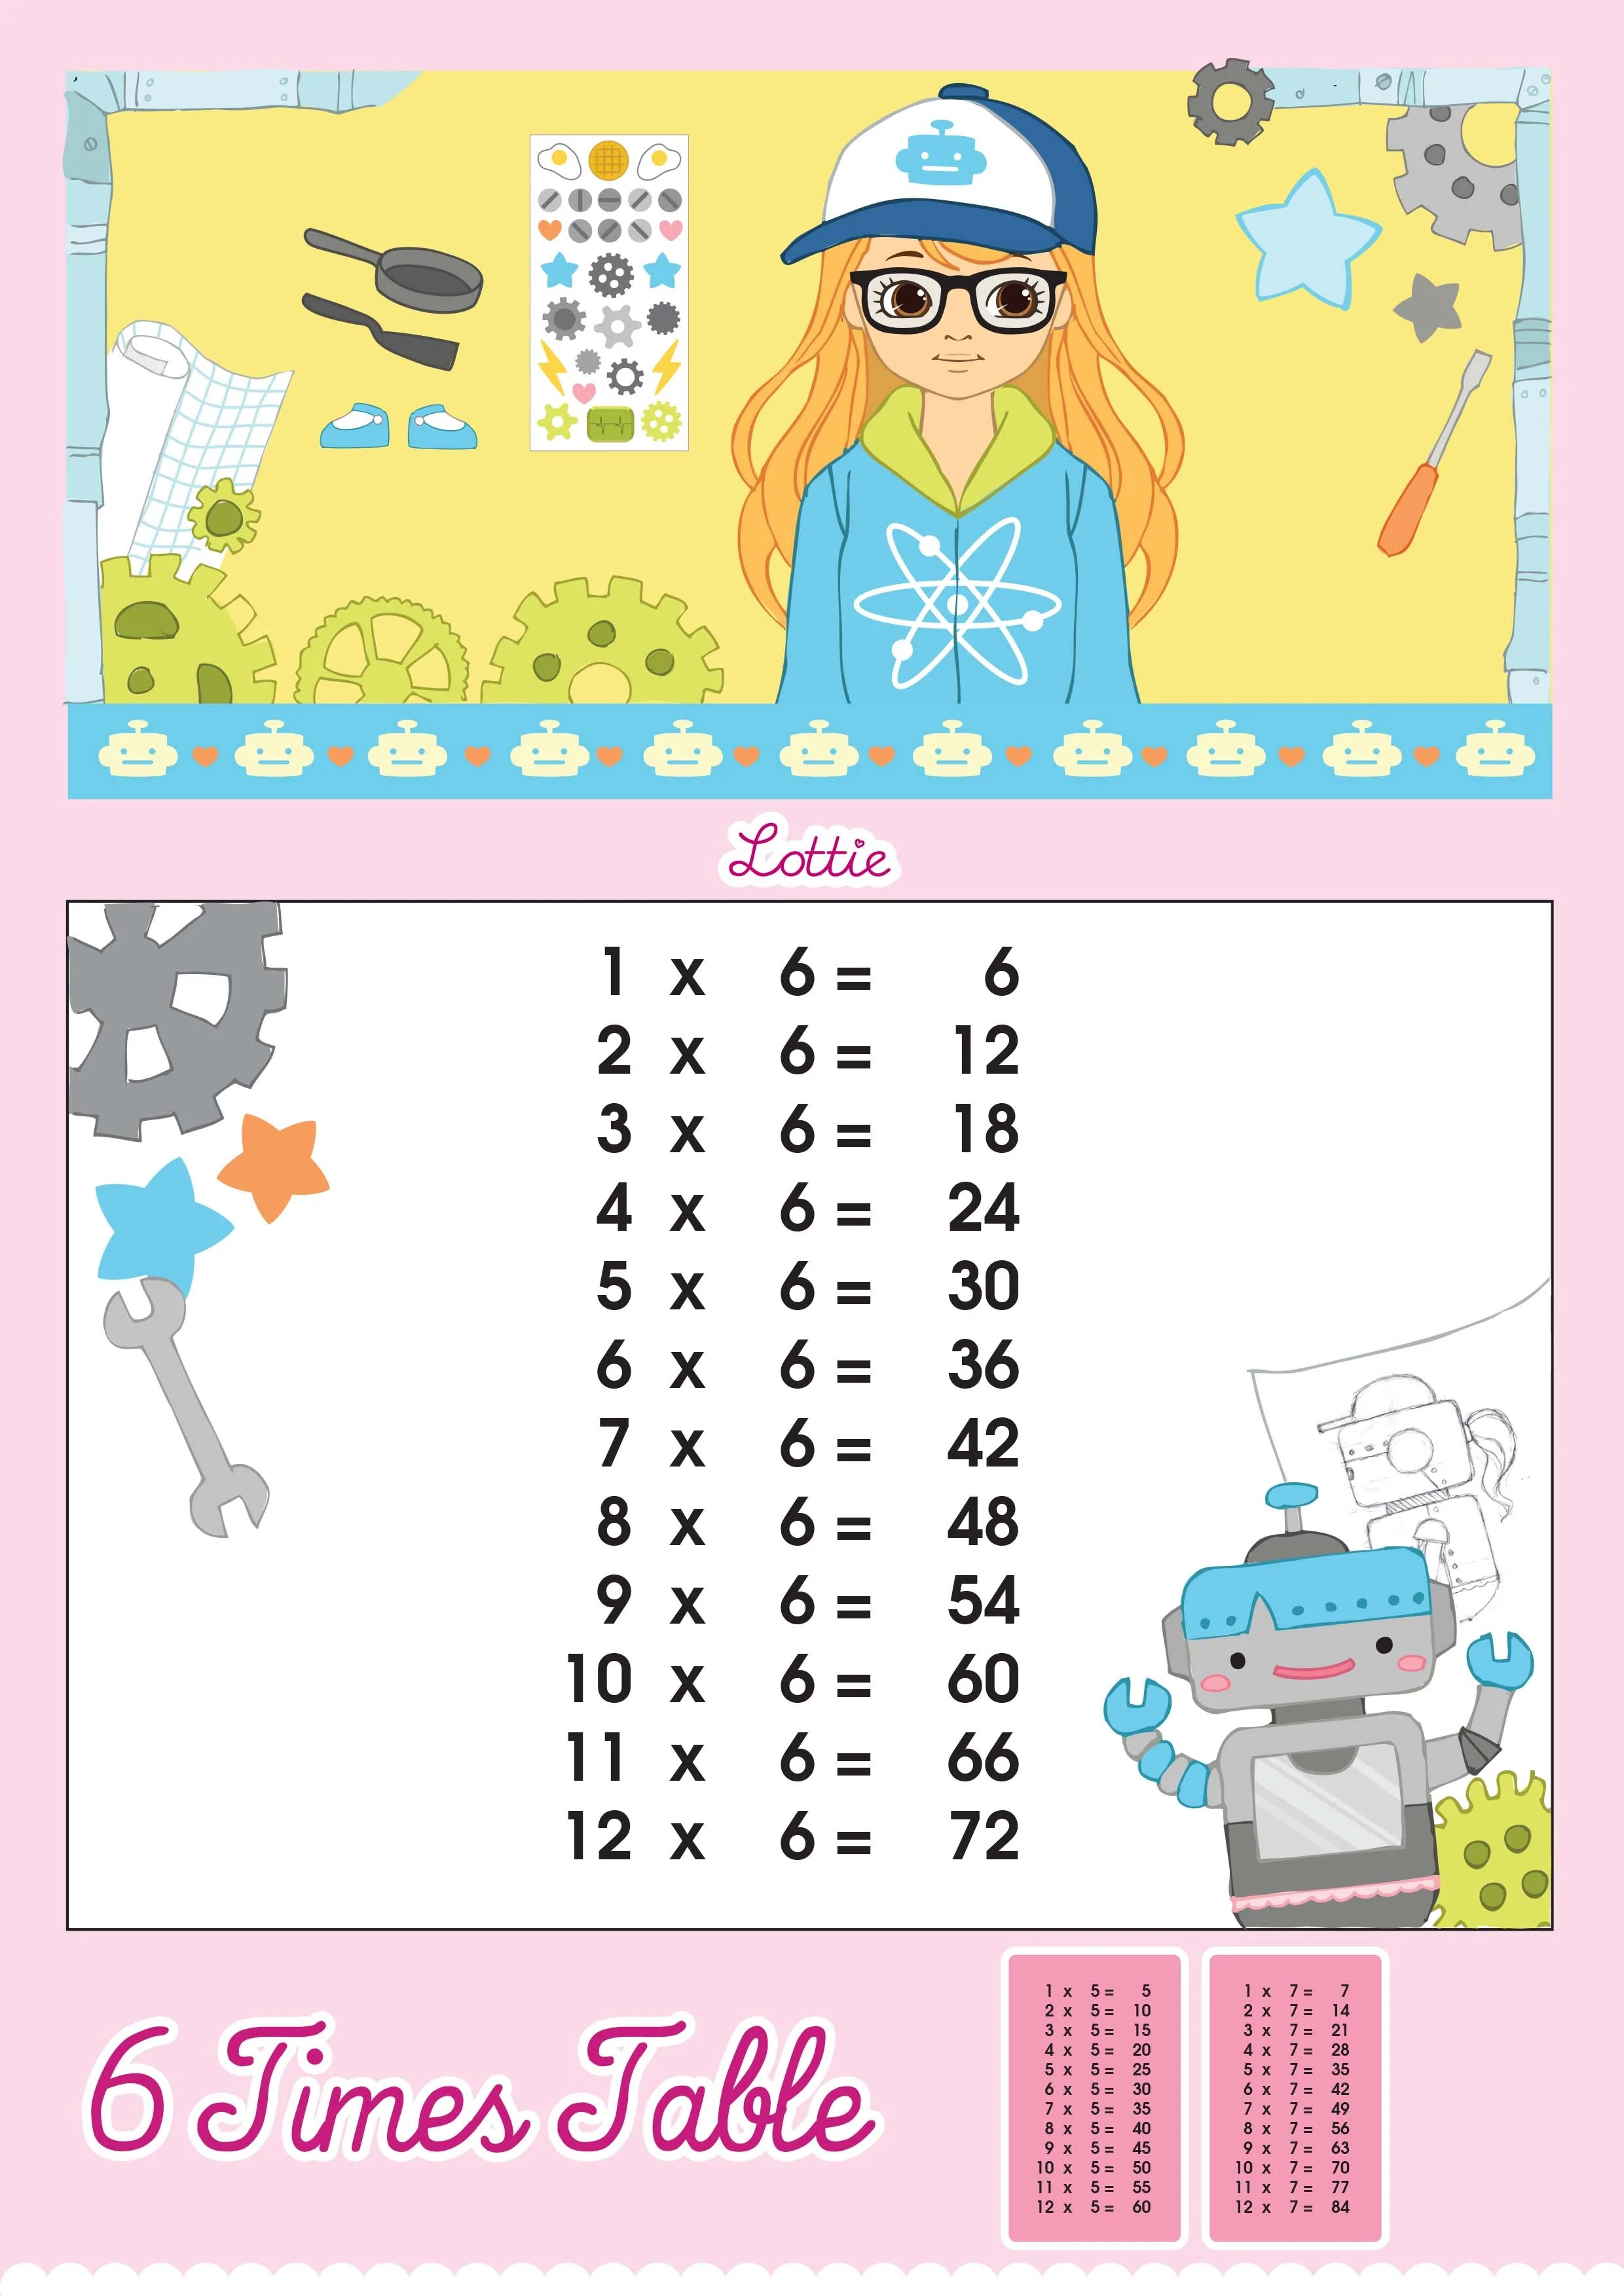 6 Times Table Printable Chart Lottie Dolls